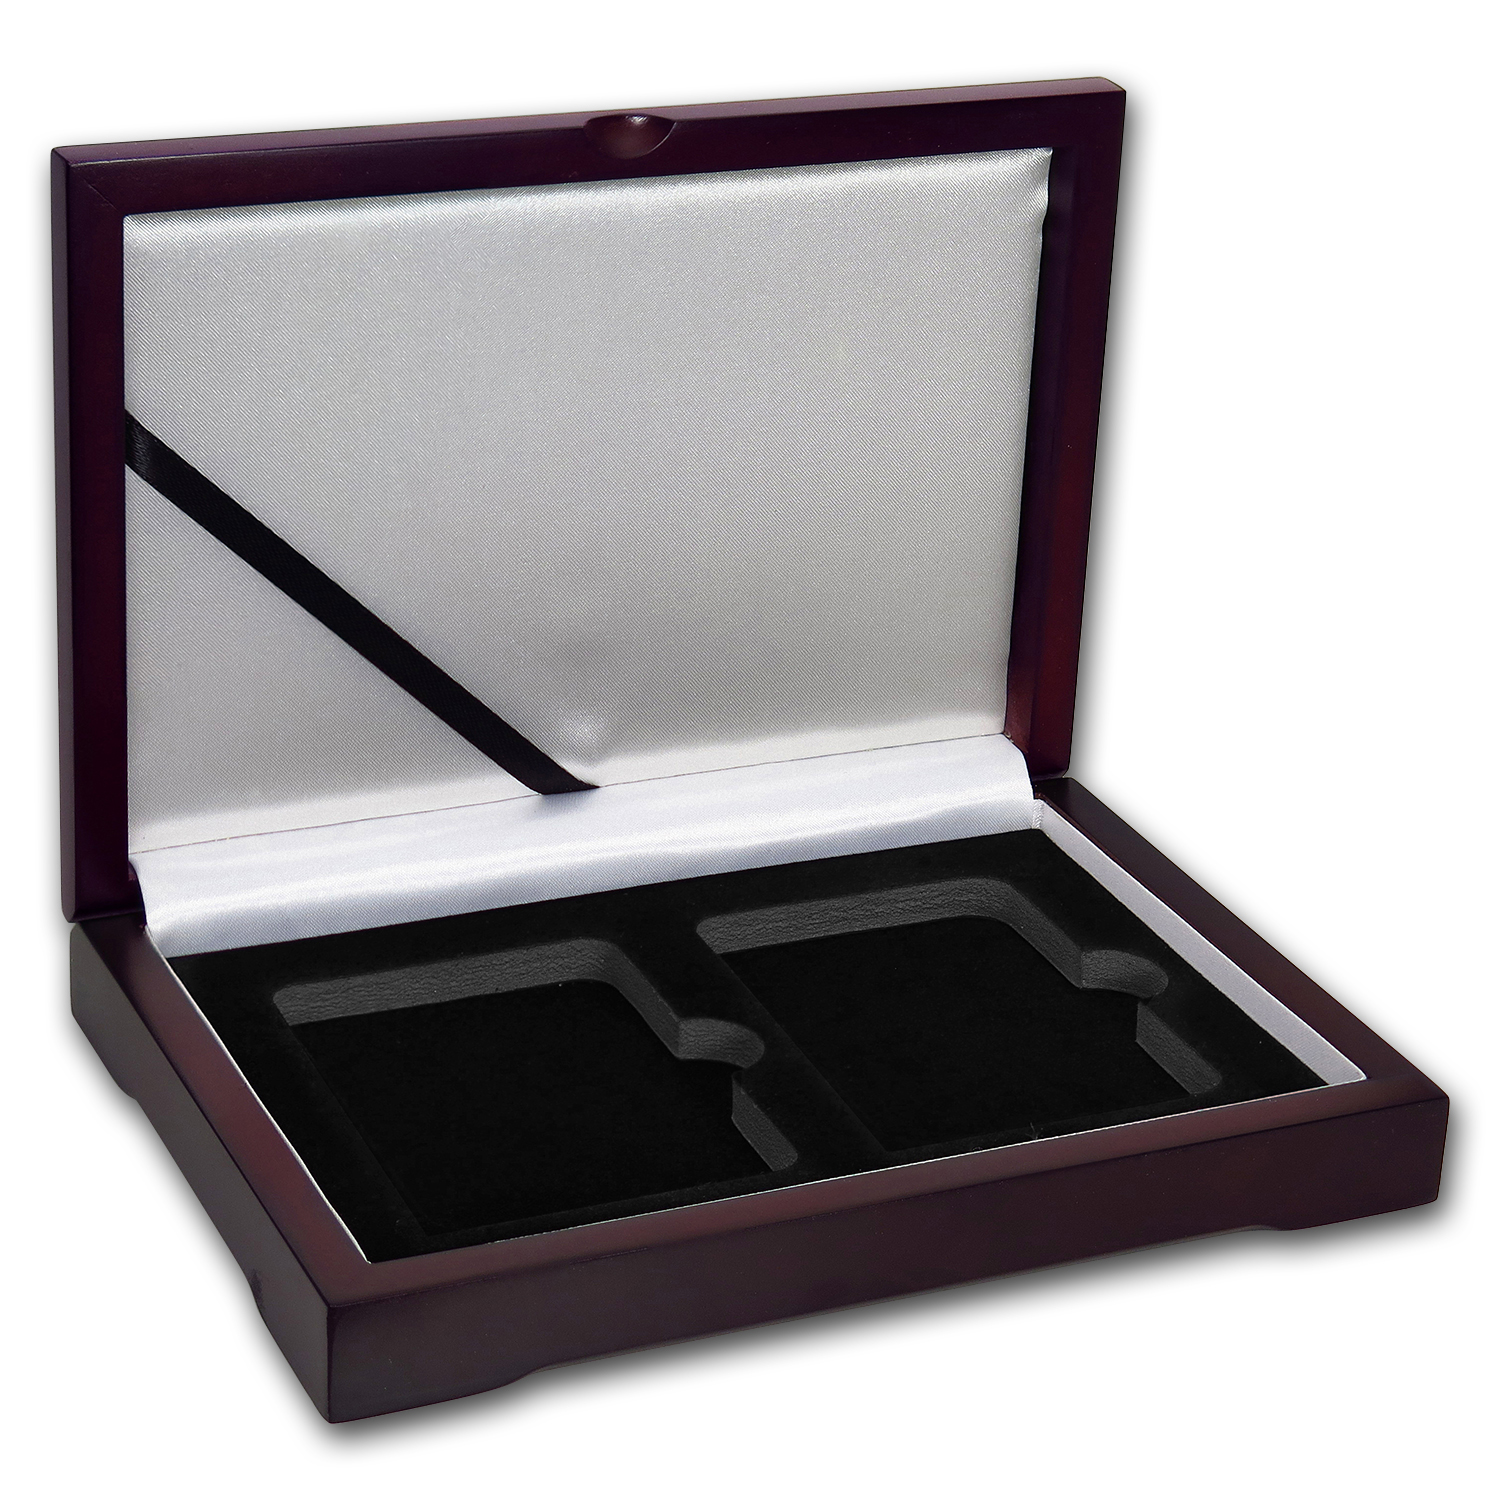 Hardwood Slab Gift Box - Two Slab